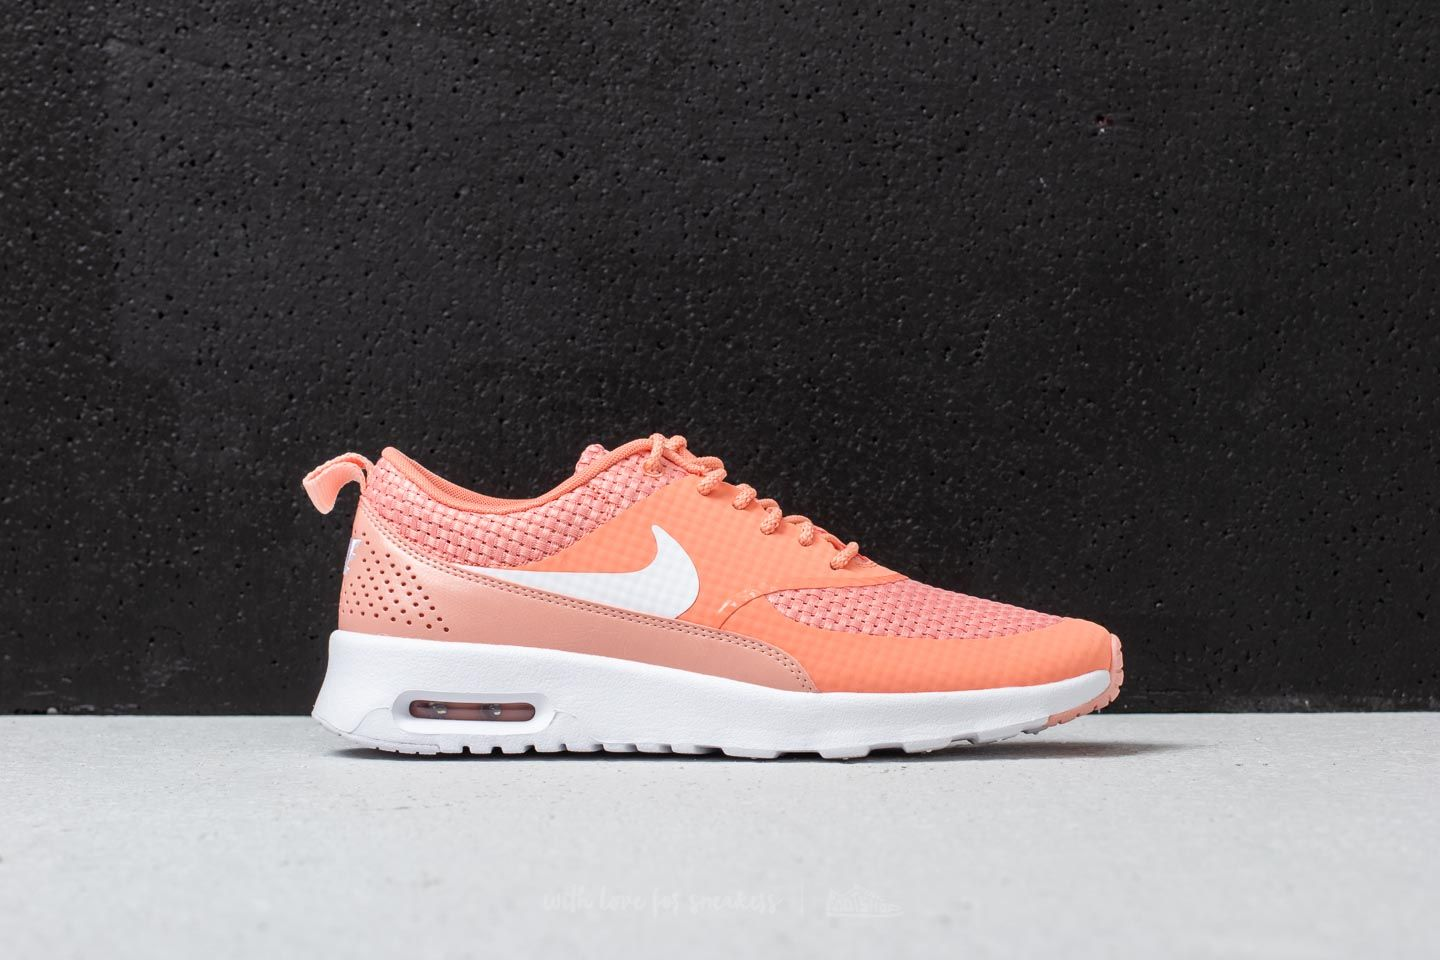 factory price 9315b 65837 Nike Wmns Air Max Thea Premium Crimson Bliss  White at a great price 73 €